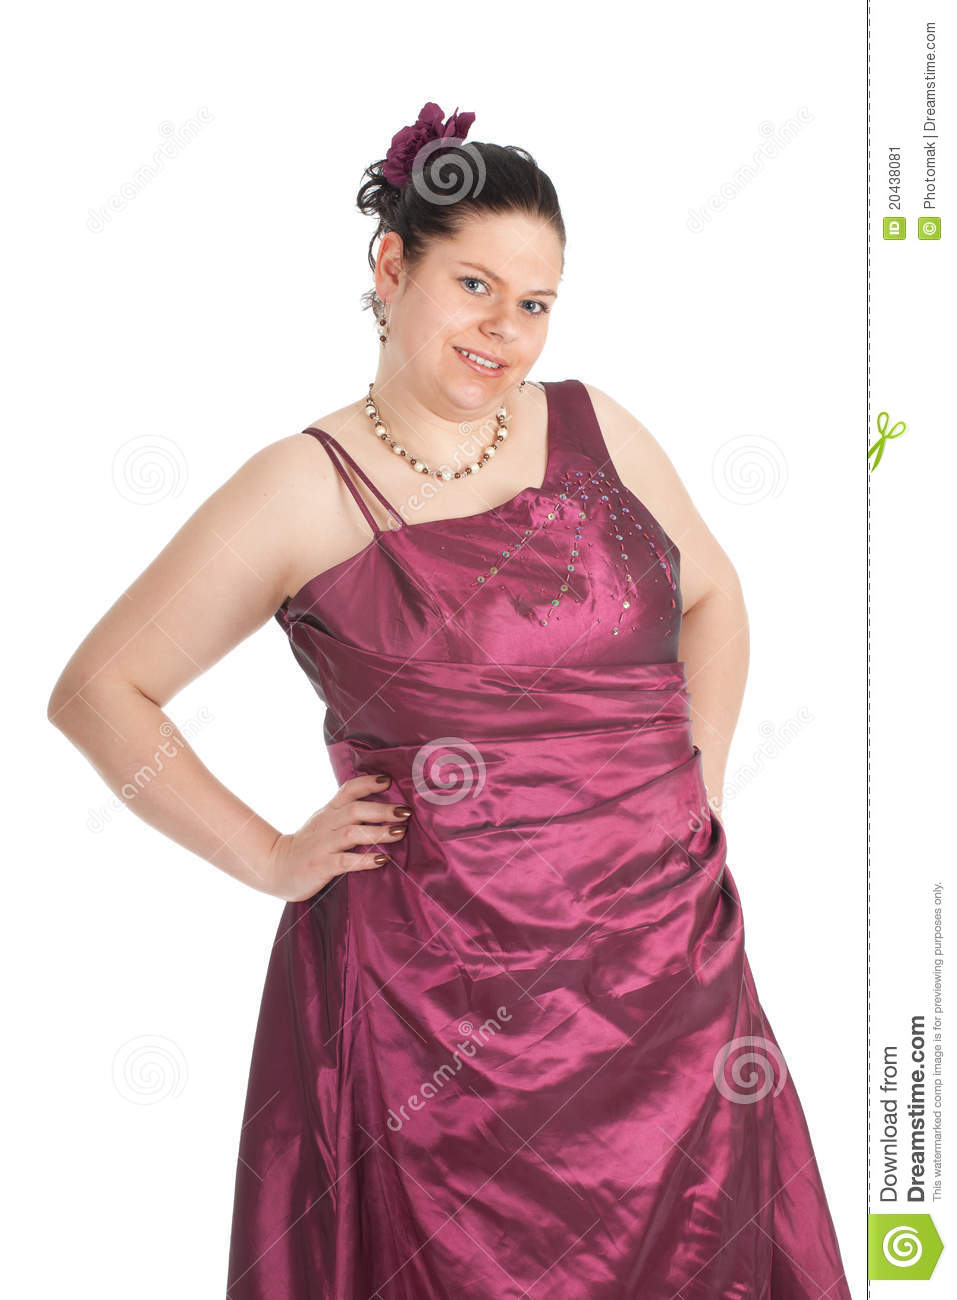 Fat woman in ball dress stock image. Image of figure - 20438081